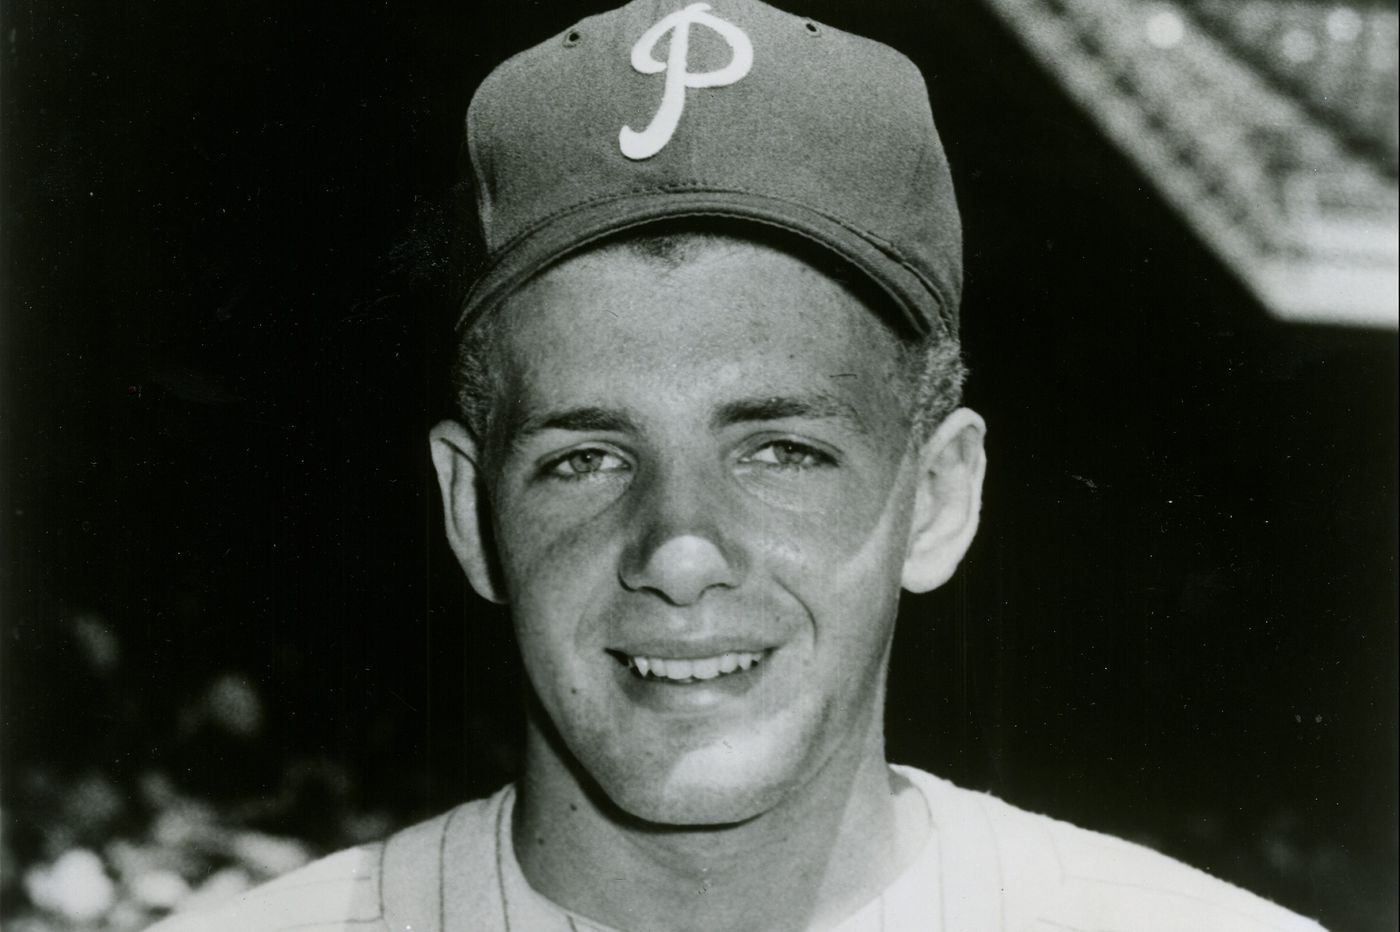 Fred Van Dusen was a bust with the Phillies, but not in life | Frank's Place